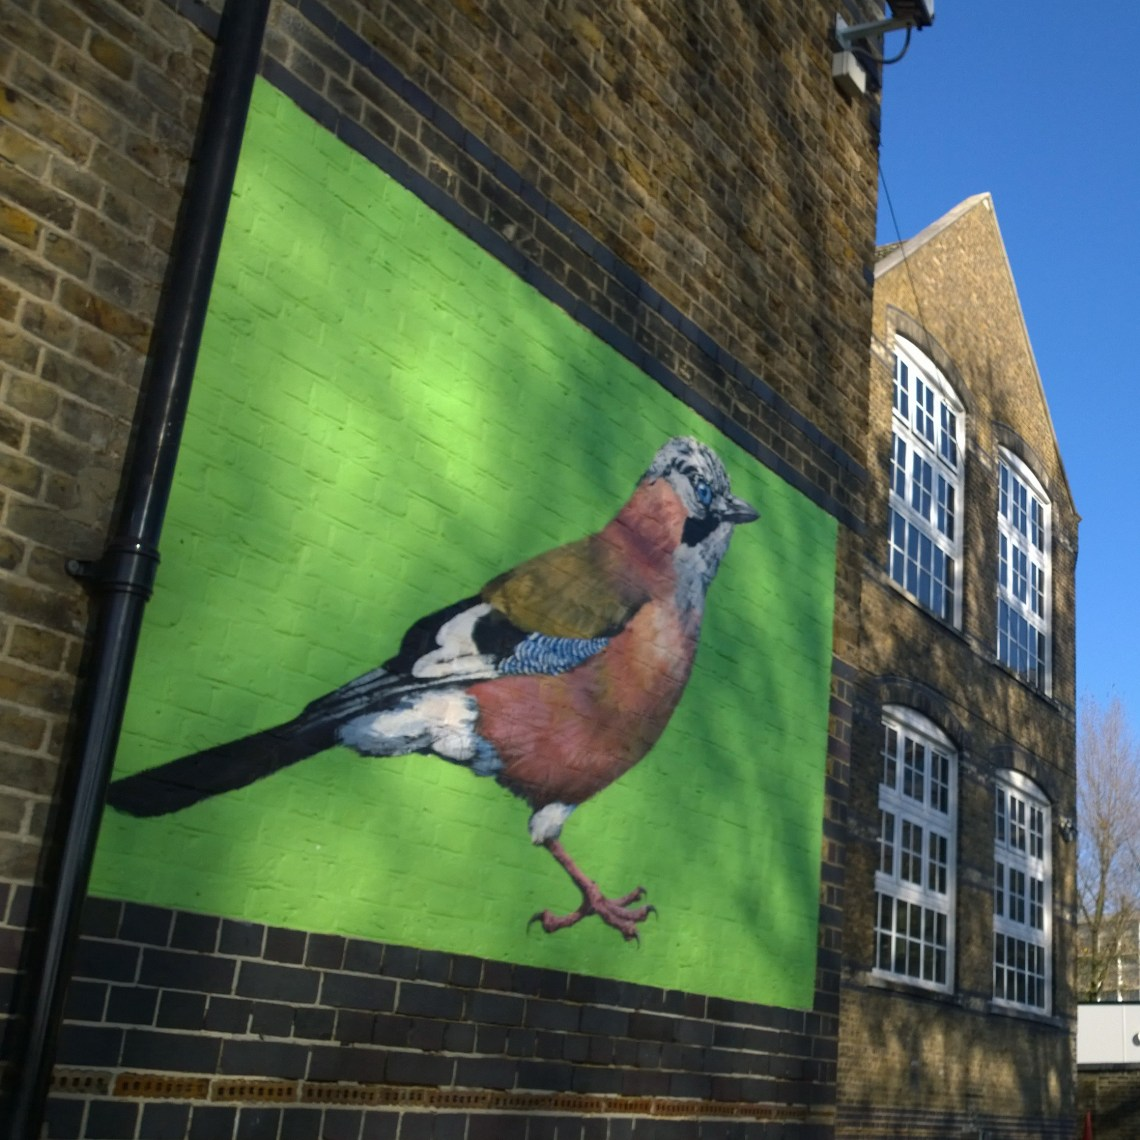 Painting of a Jay by ATM in the grounds of Berrymede school